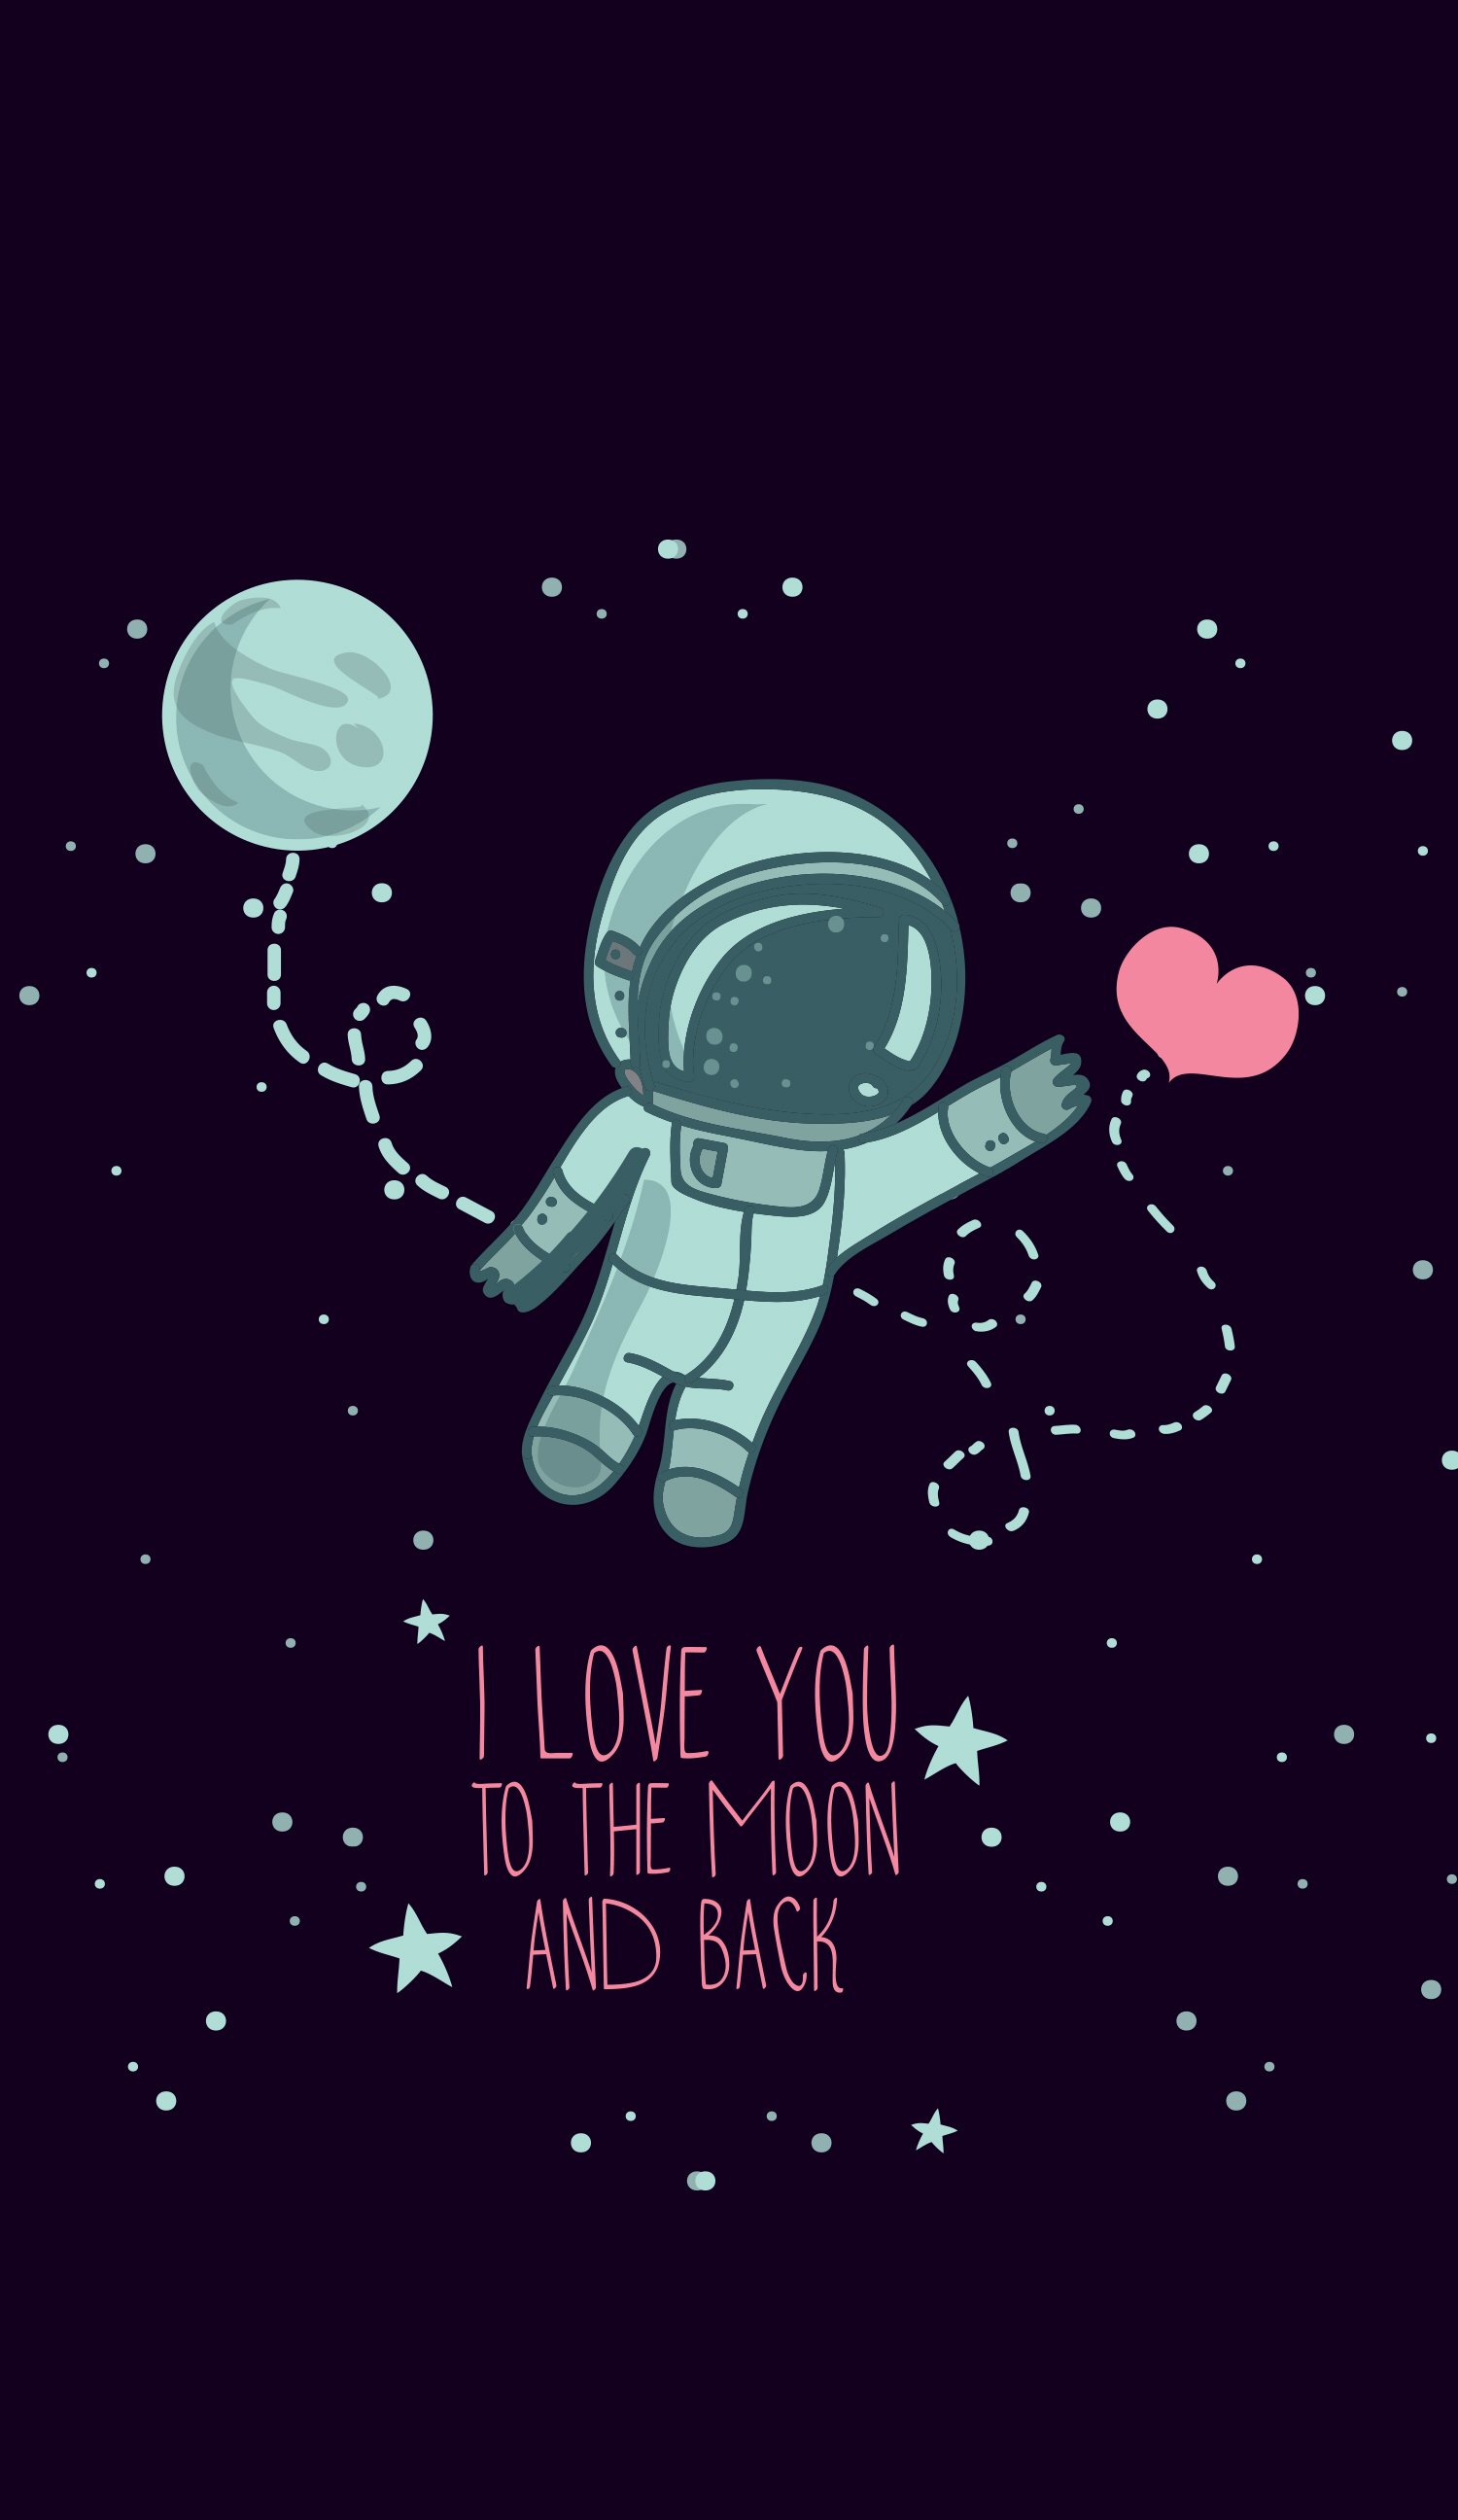 Cute Heart Wallpaper Background Cute Astronaut Wallpaper Wallpapers In 2018 Pinterest